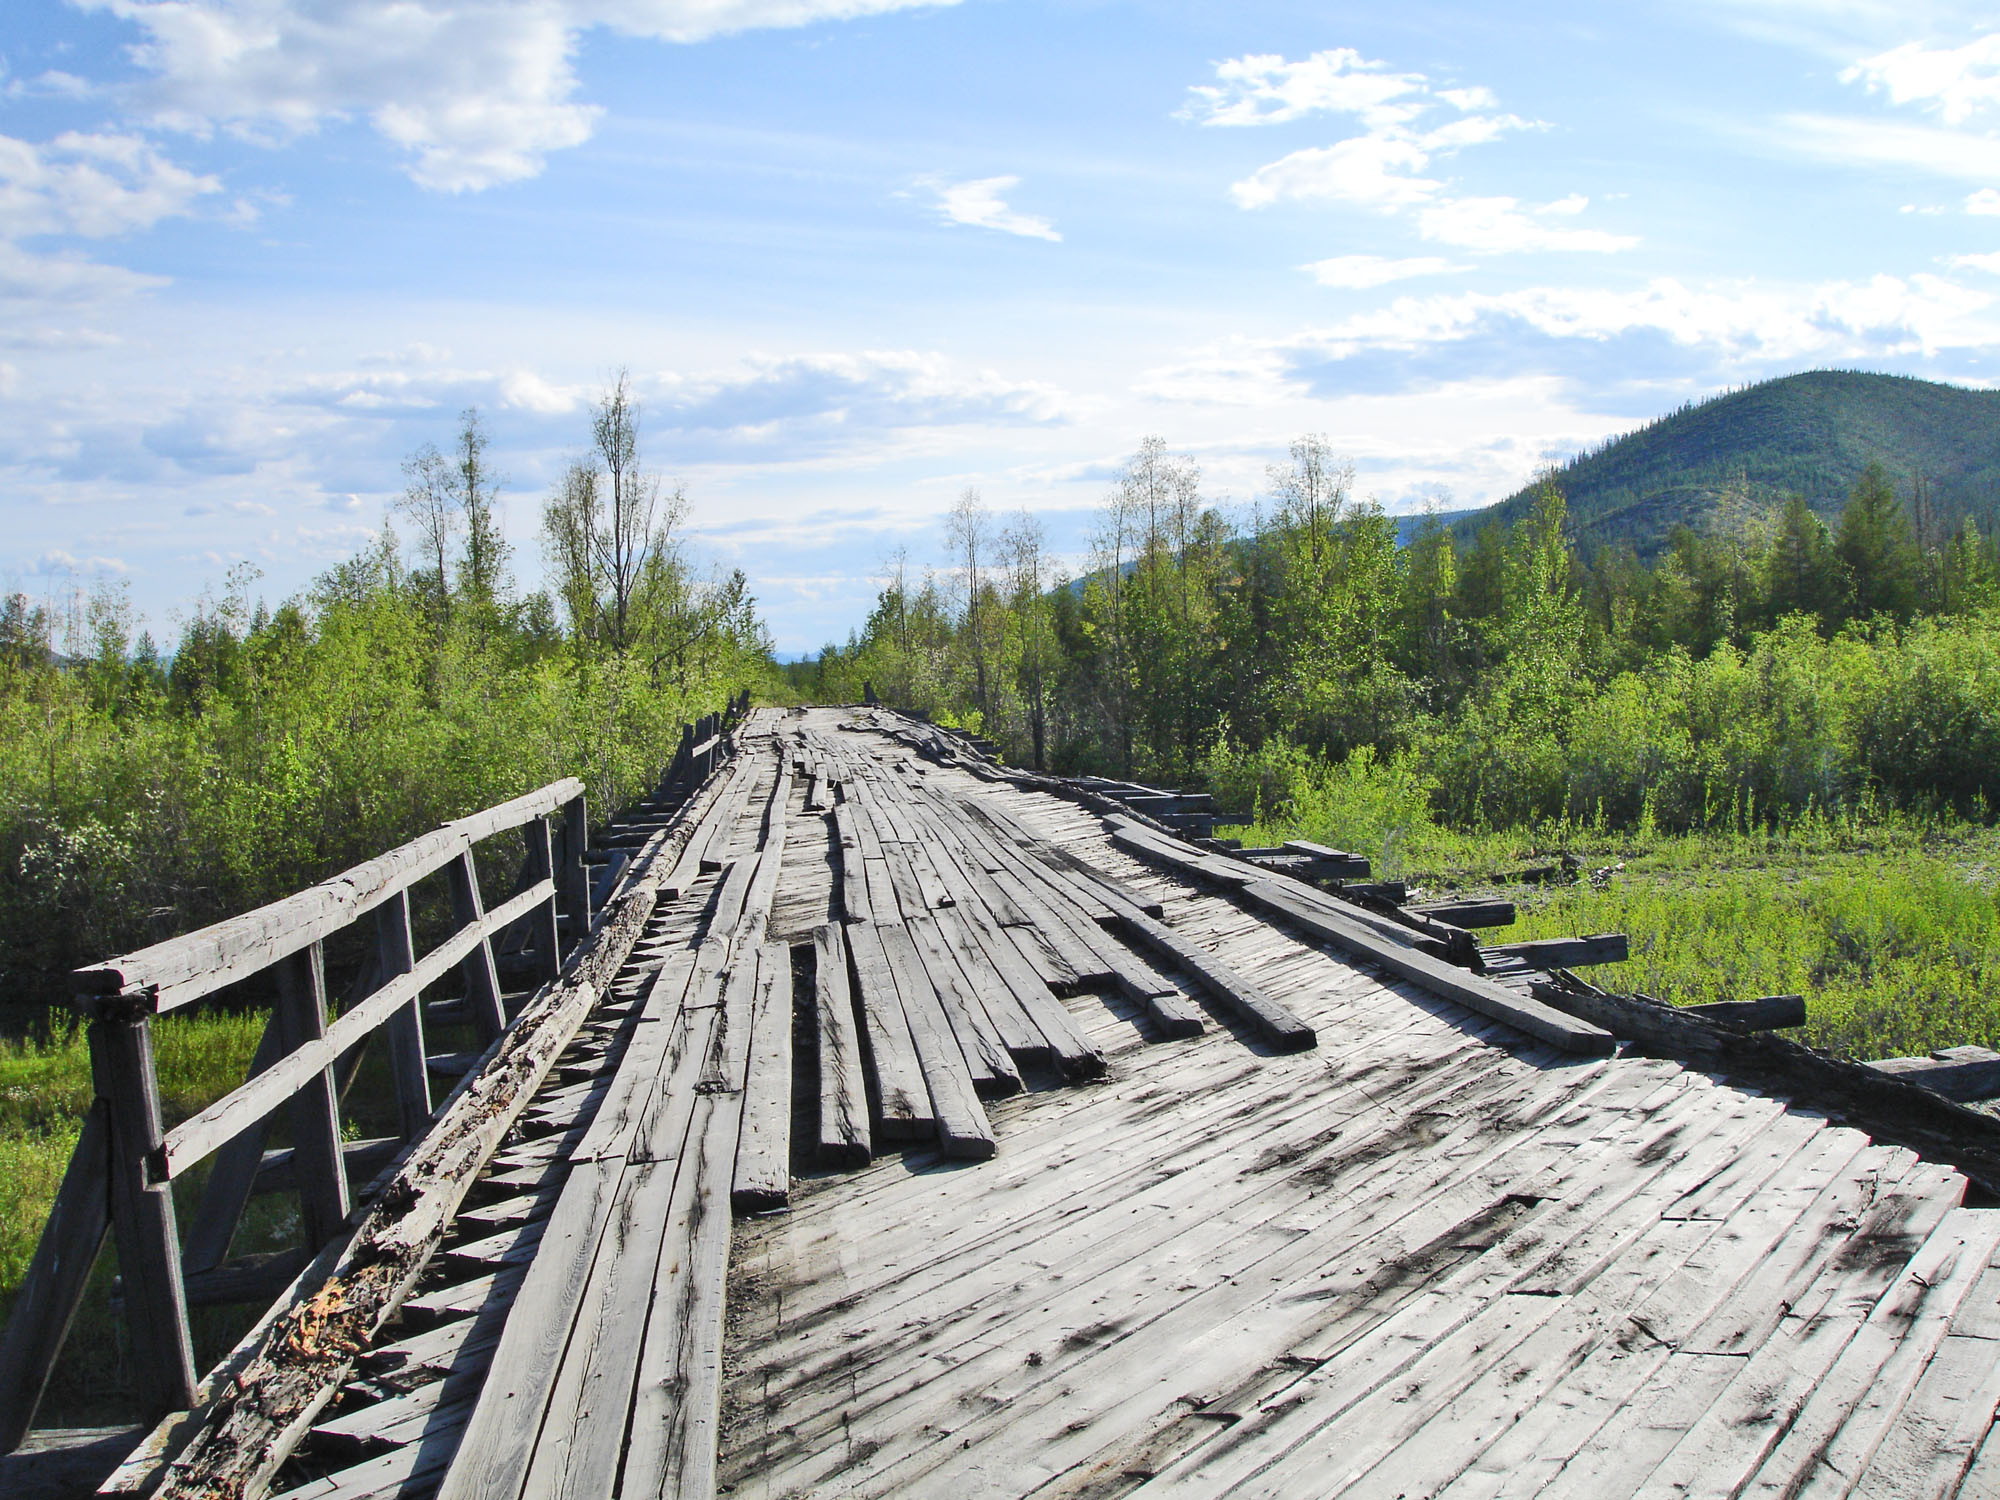 Bridge built by prisoners  on the road of bones and abandoned